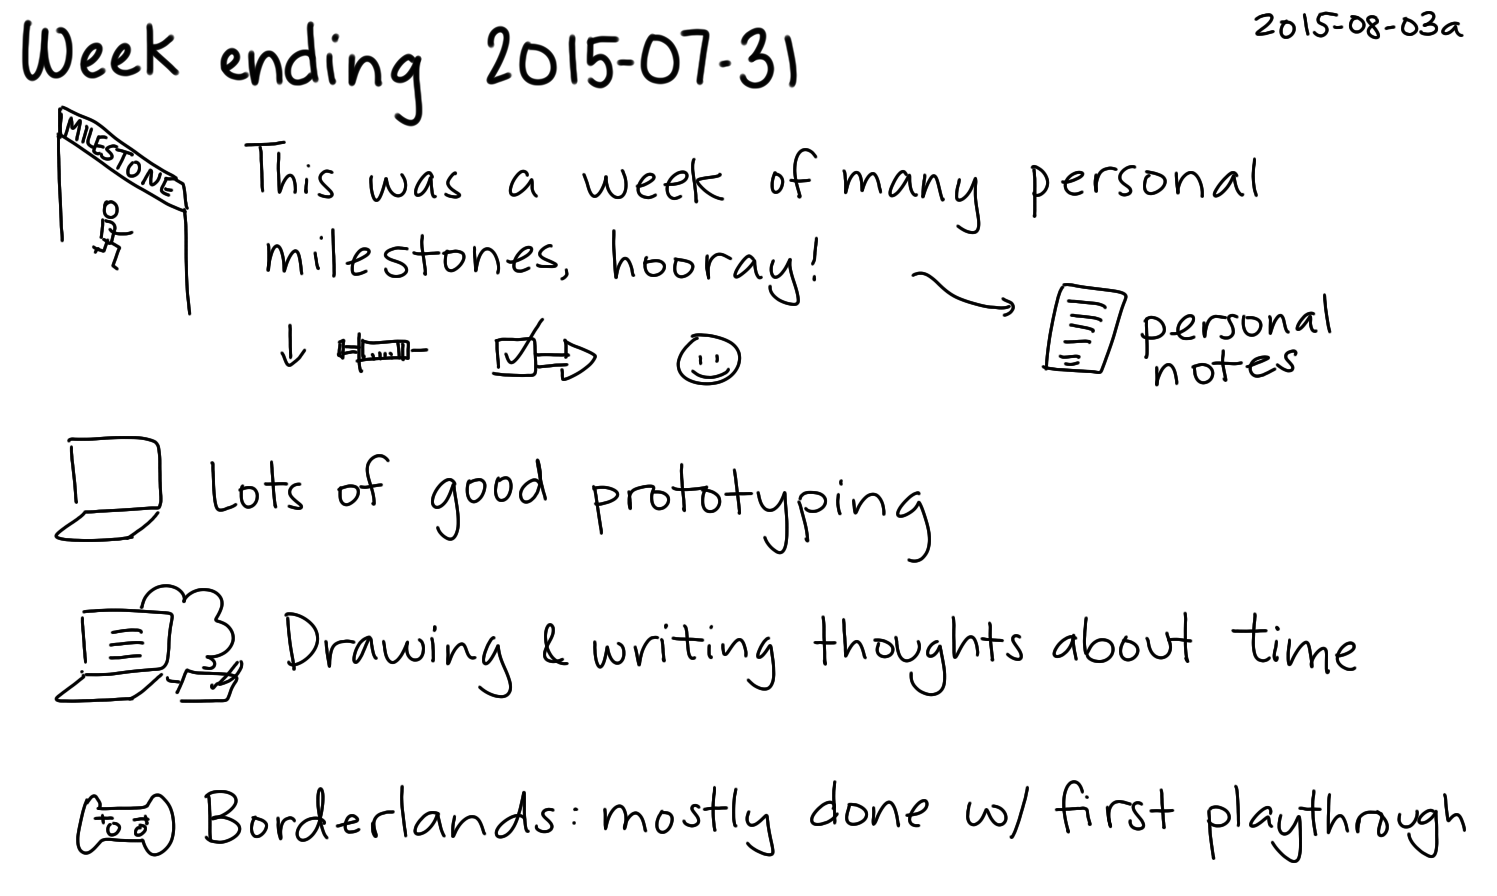 2015-08-03a Week ending 2015-07-31 -- index card #journal #weekly.png